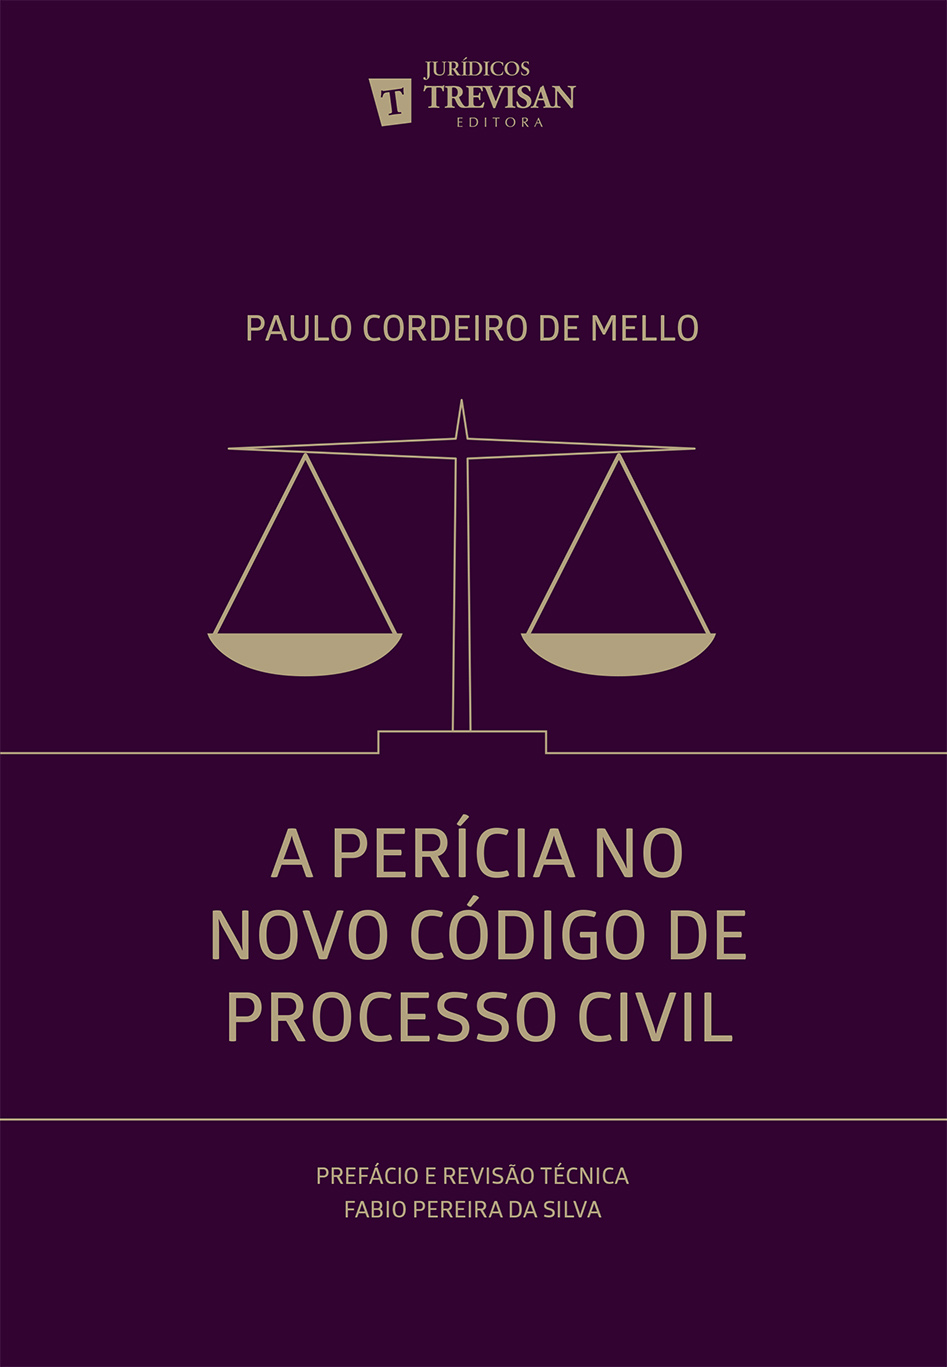 A perícia no novo código de processo Civil